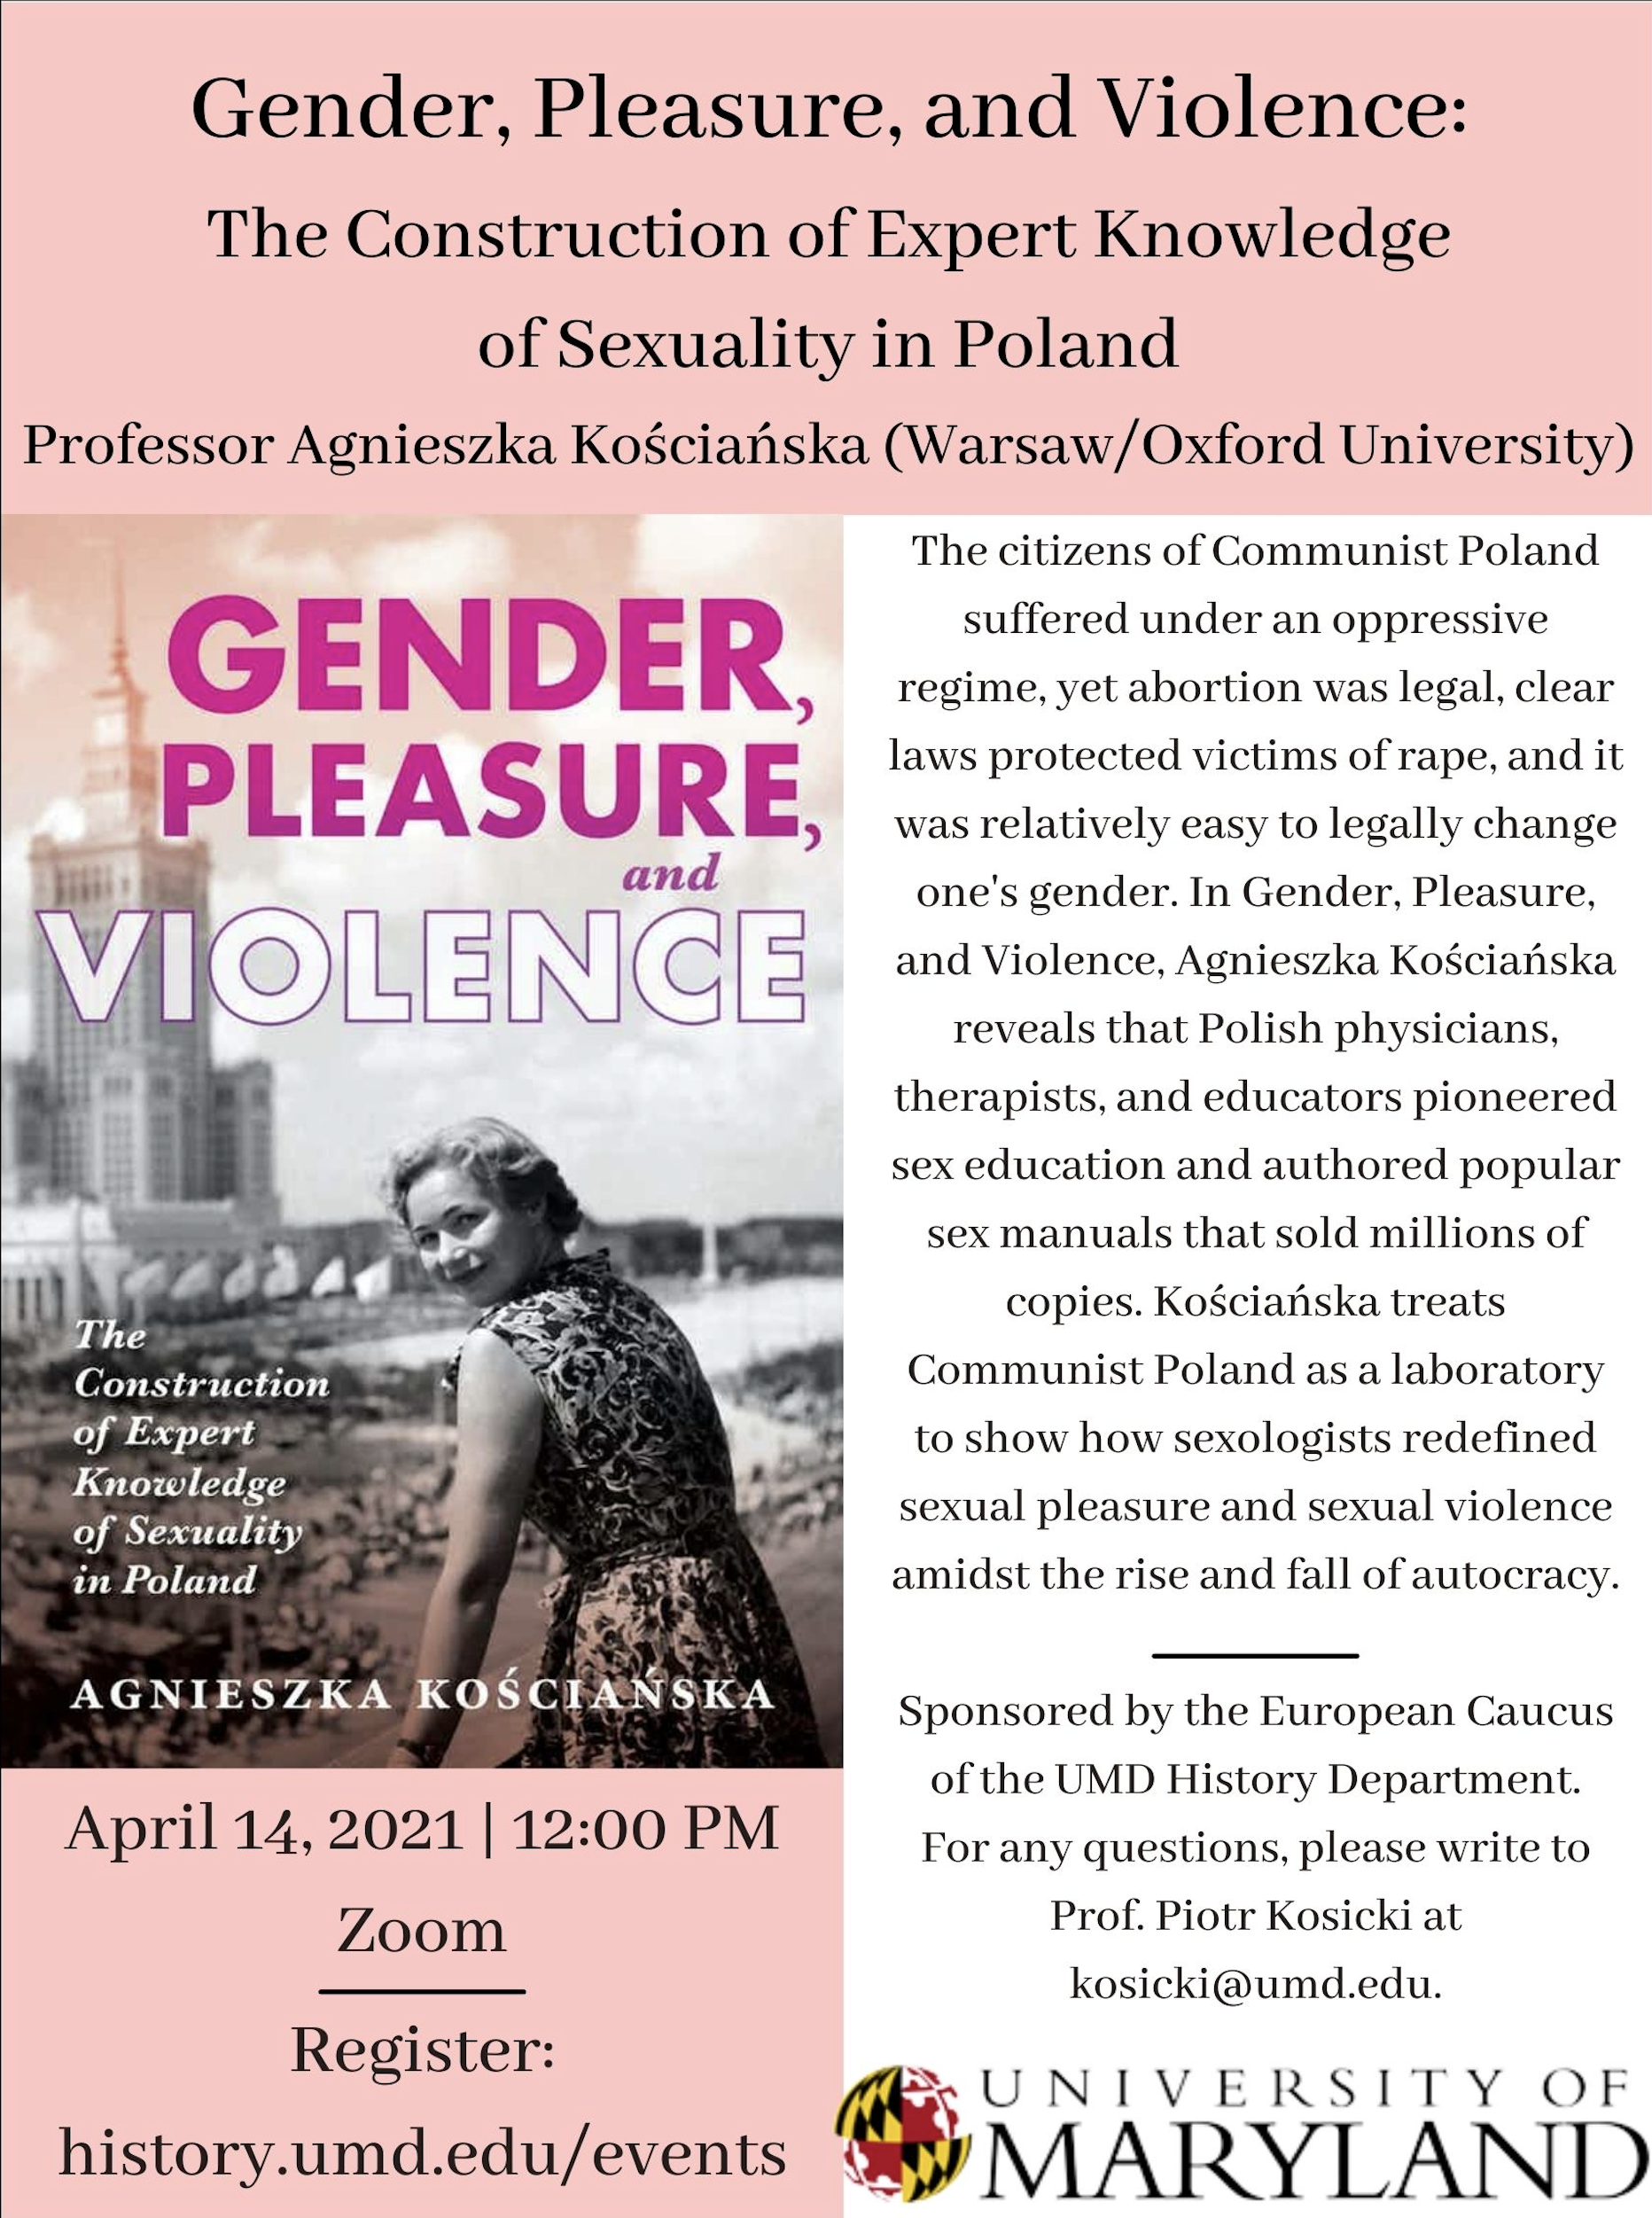 Gender, Pleasure, and Violence event on April 14, 2021